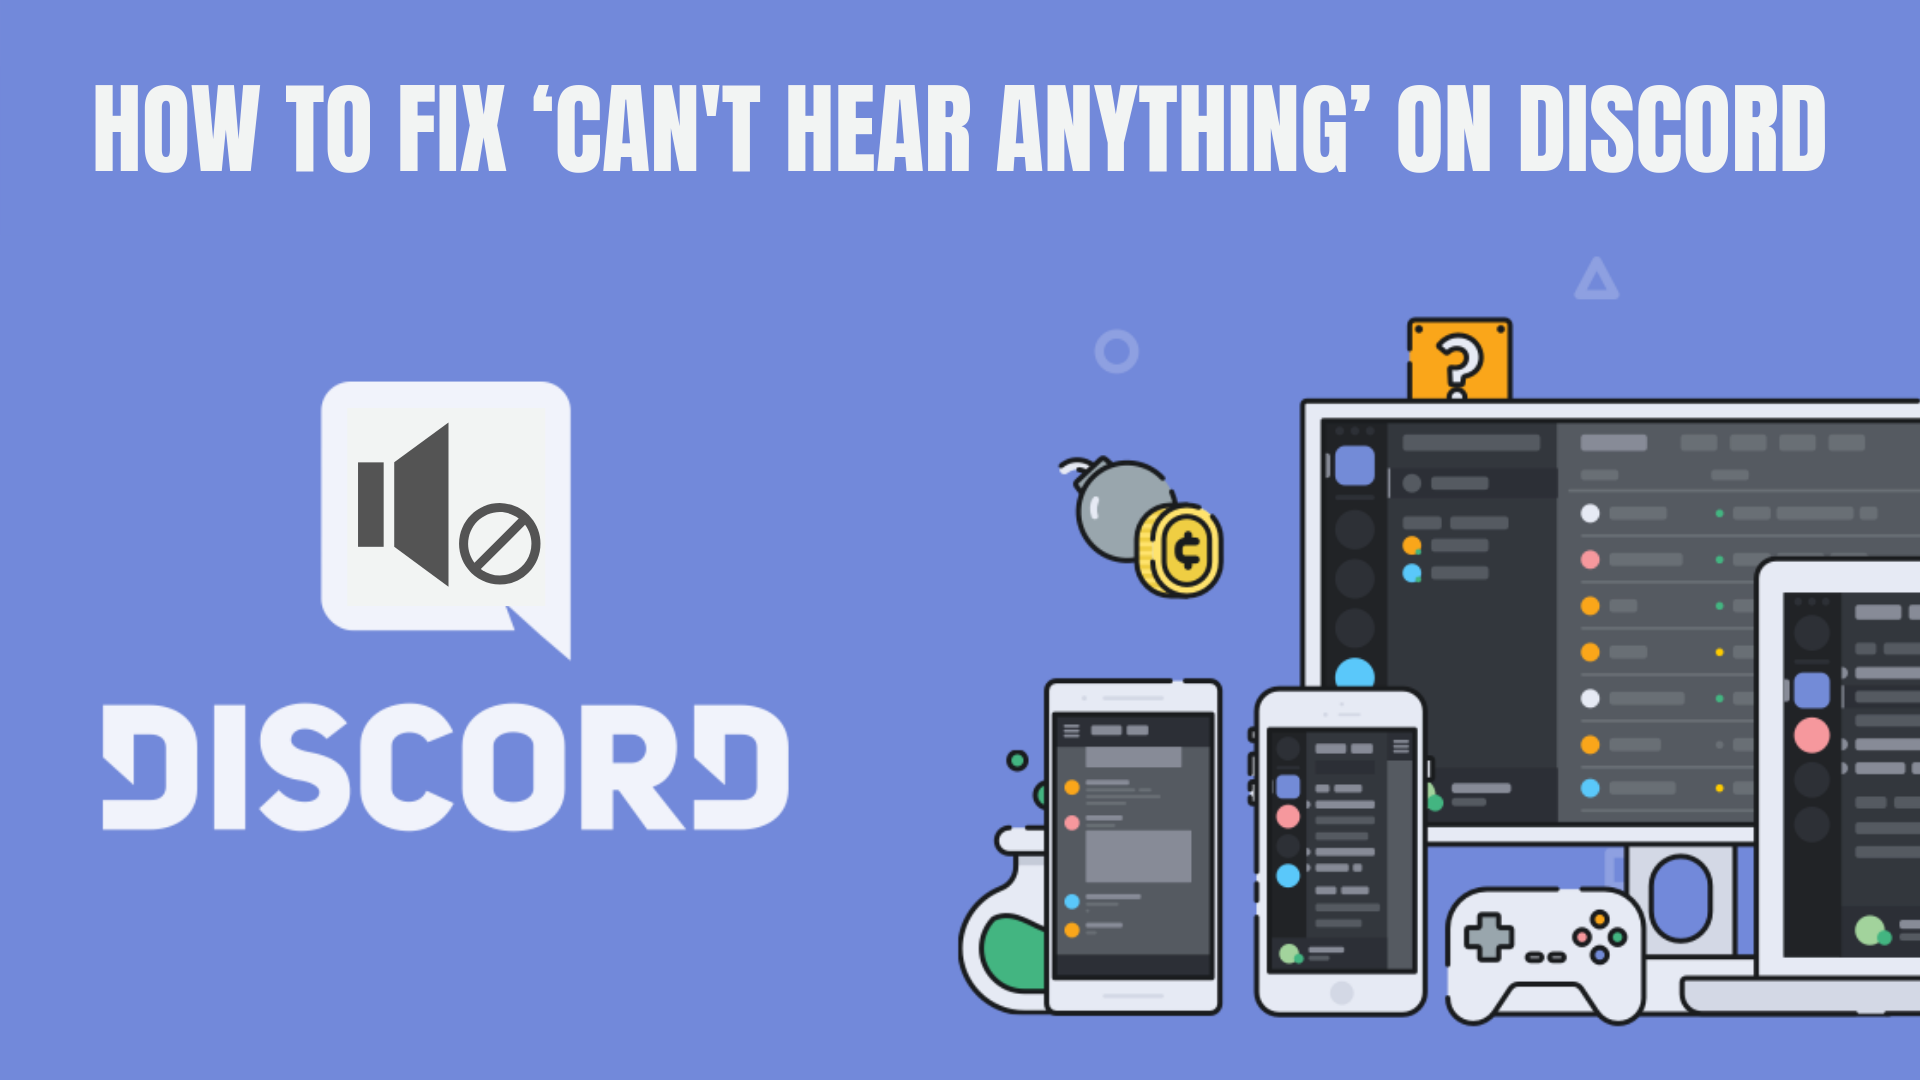 How to Fix Can't Hear Anyone on Discord